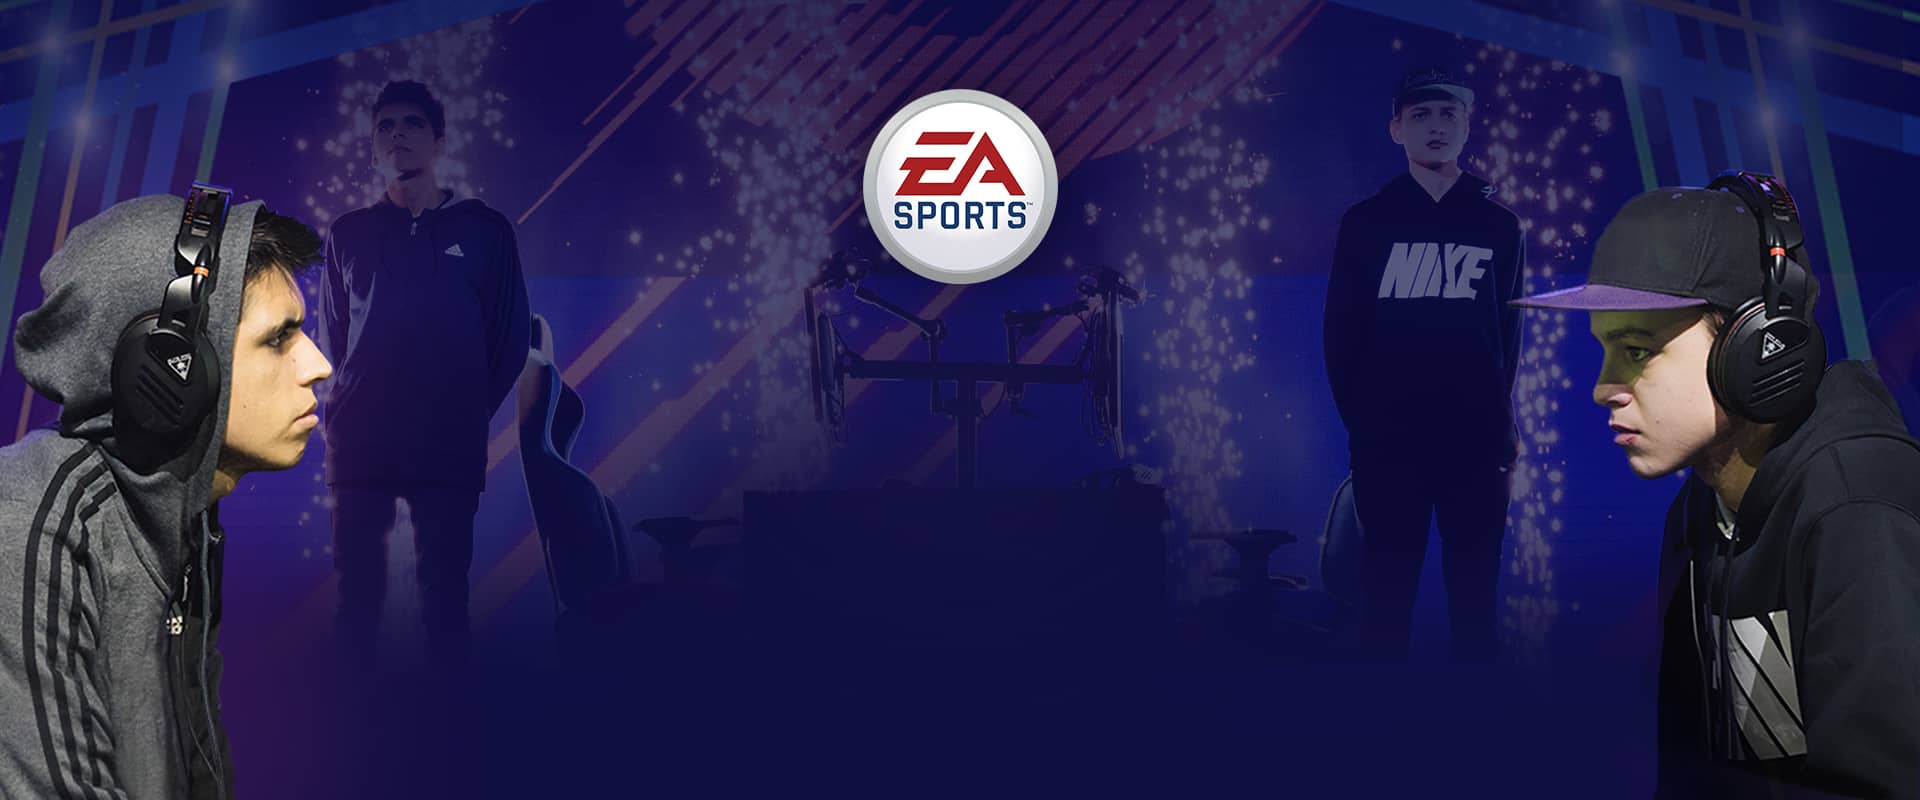 Turtle Beach is the proud audio partner of the EA Sports FIFA 18 Global Series